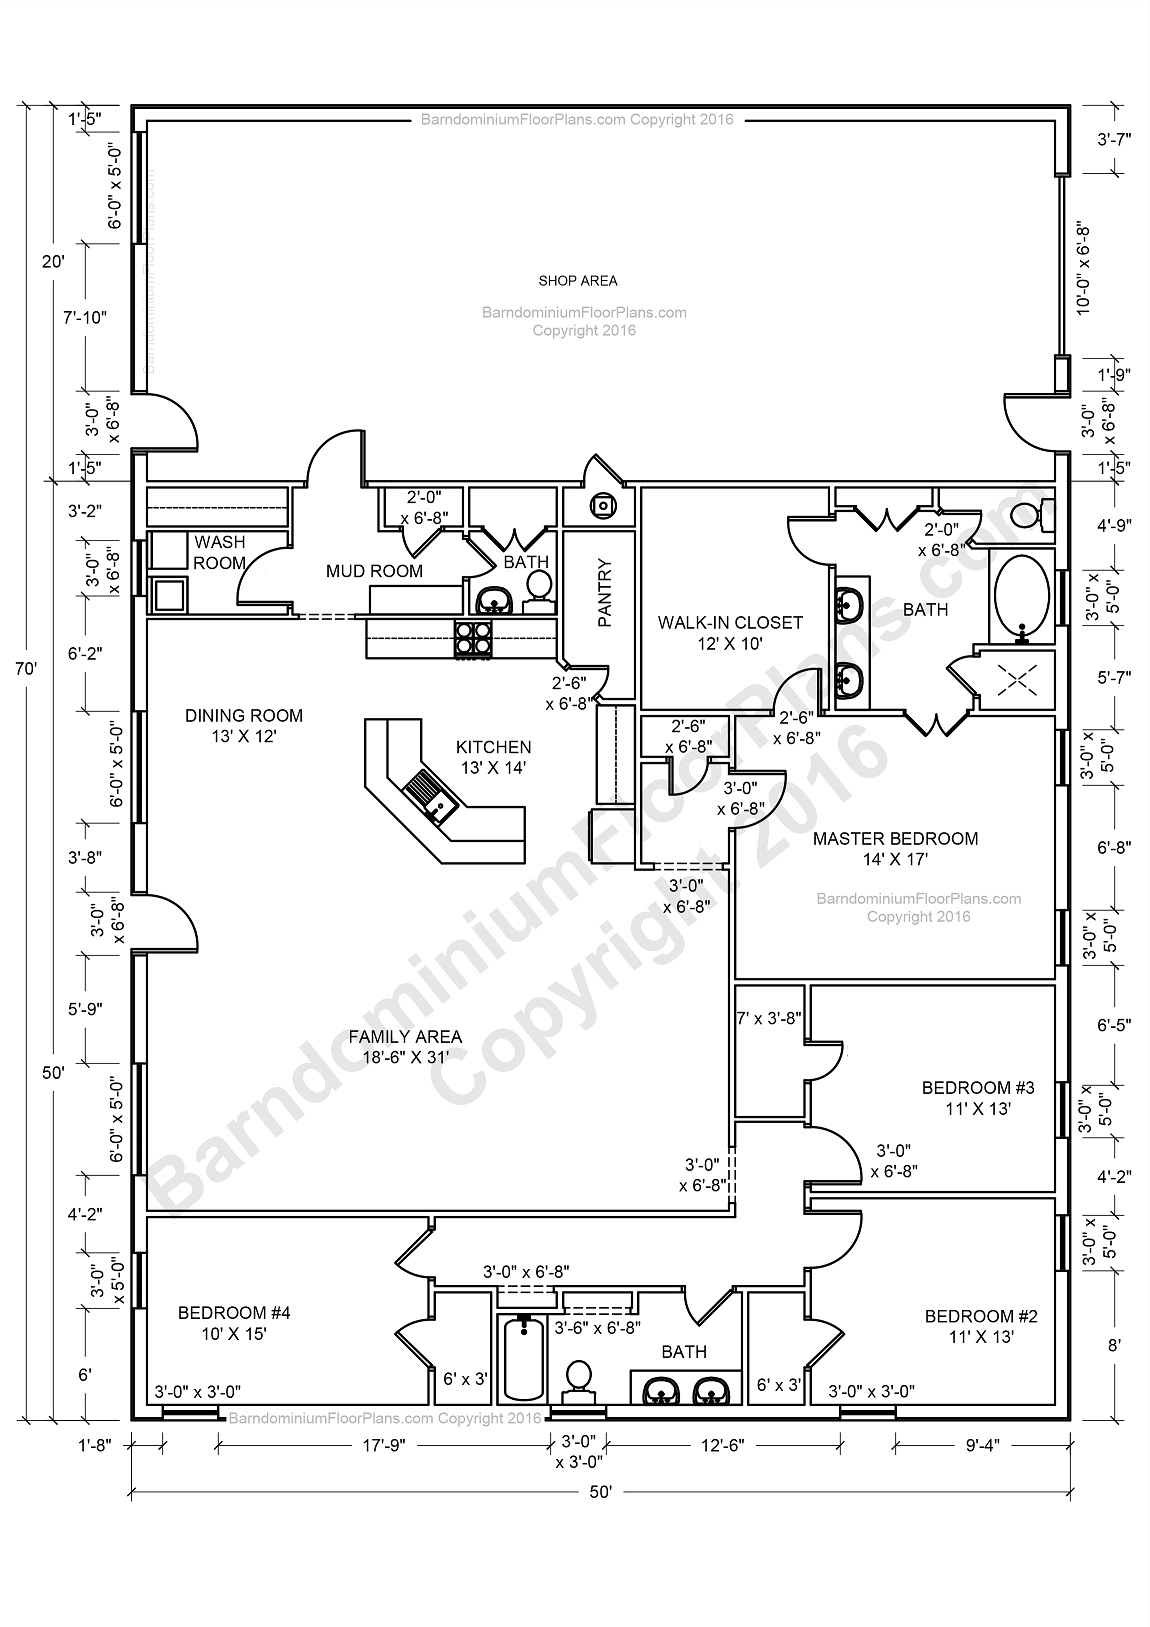 Barndominium floor plans barndominium floor plans 1 800 for Barn house plan